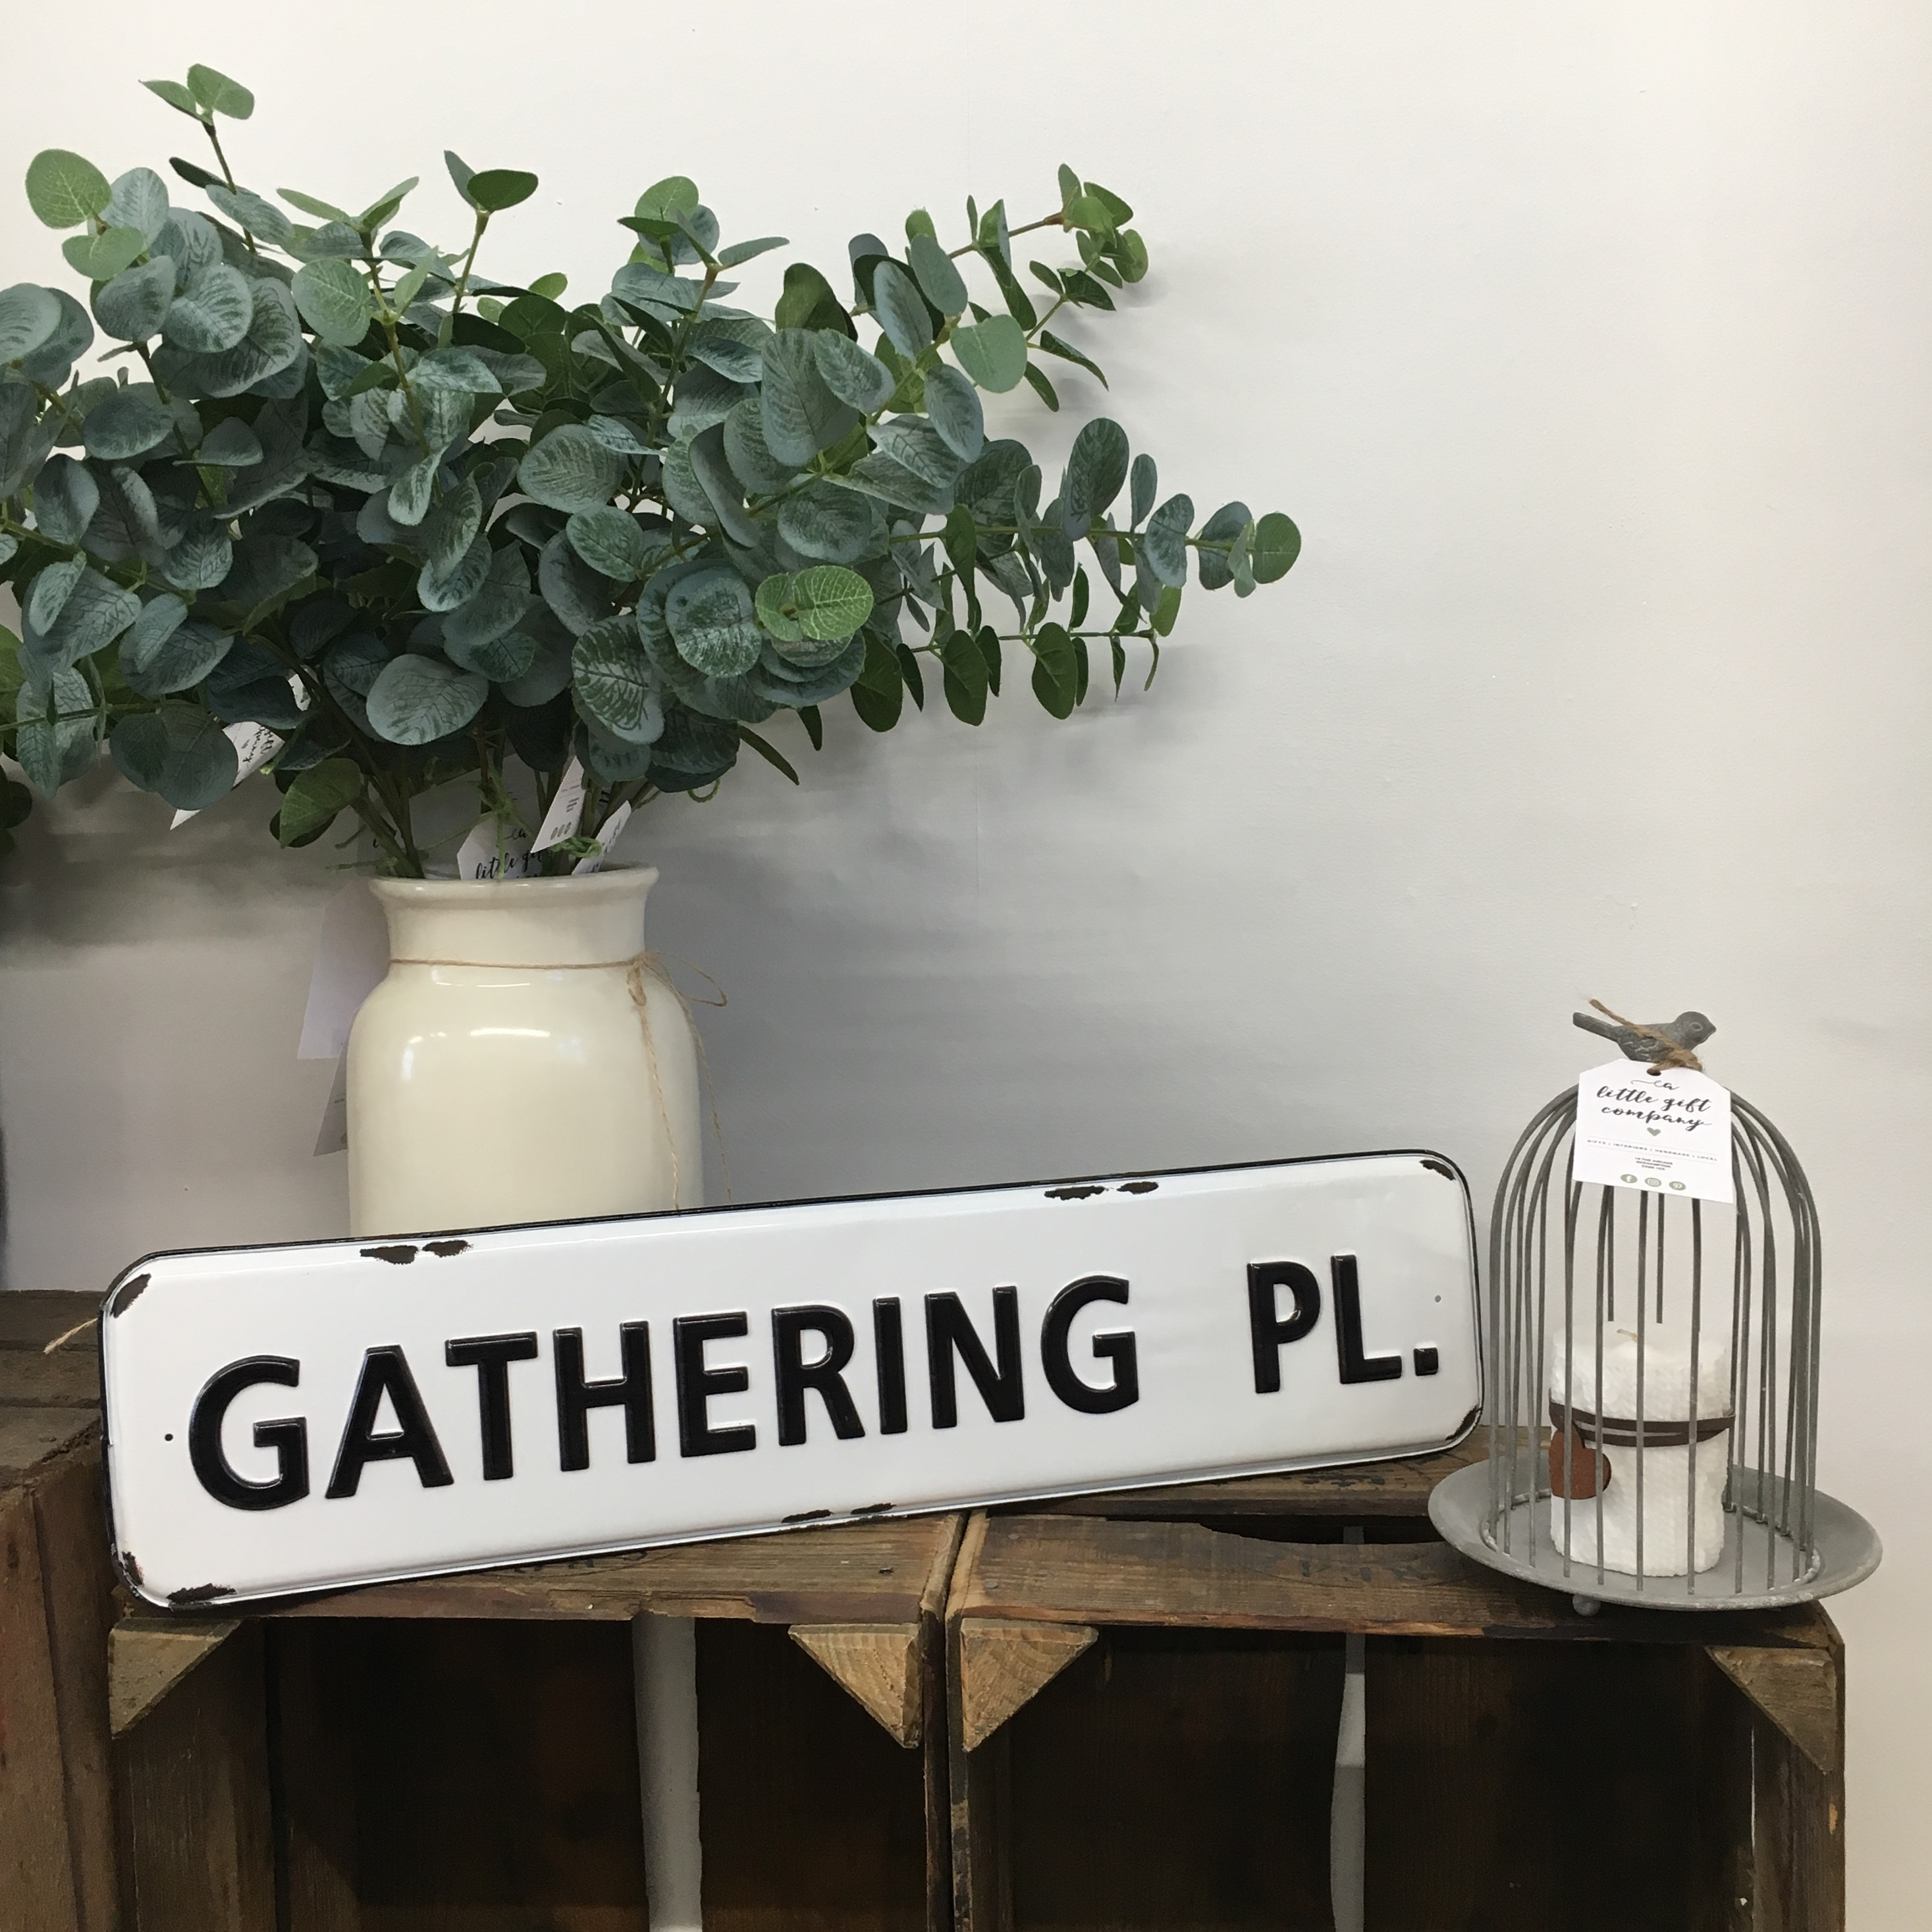 Gathering Pl metal sign